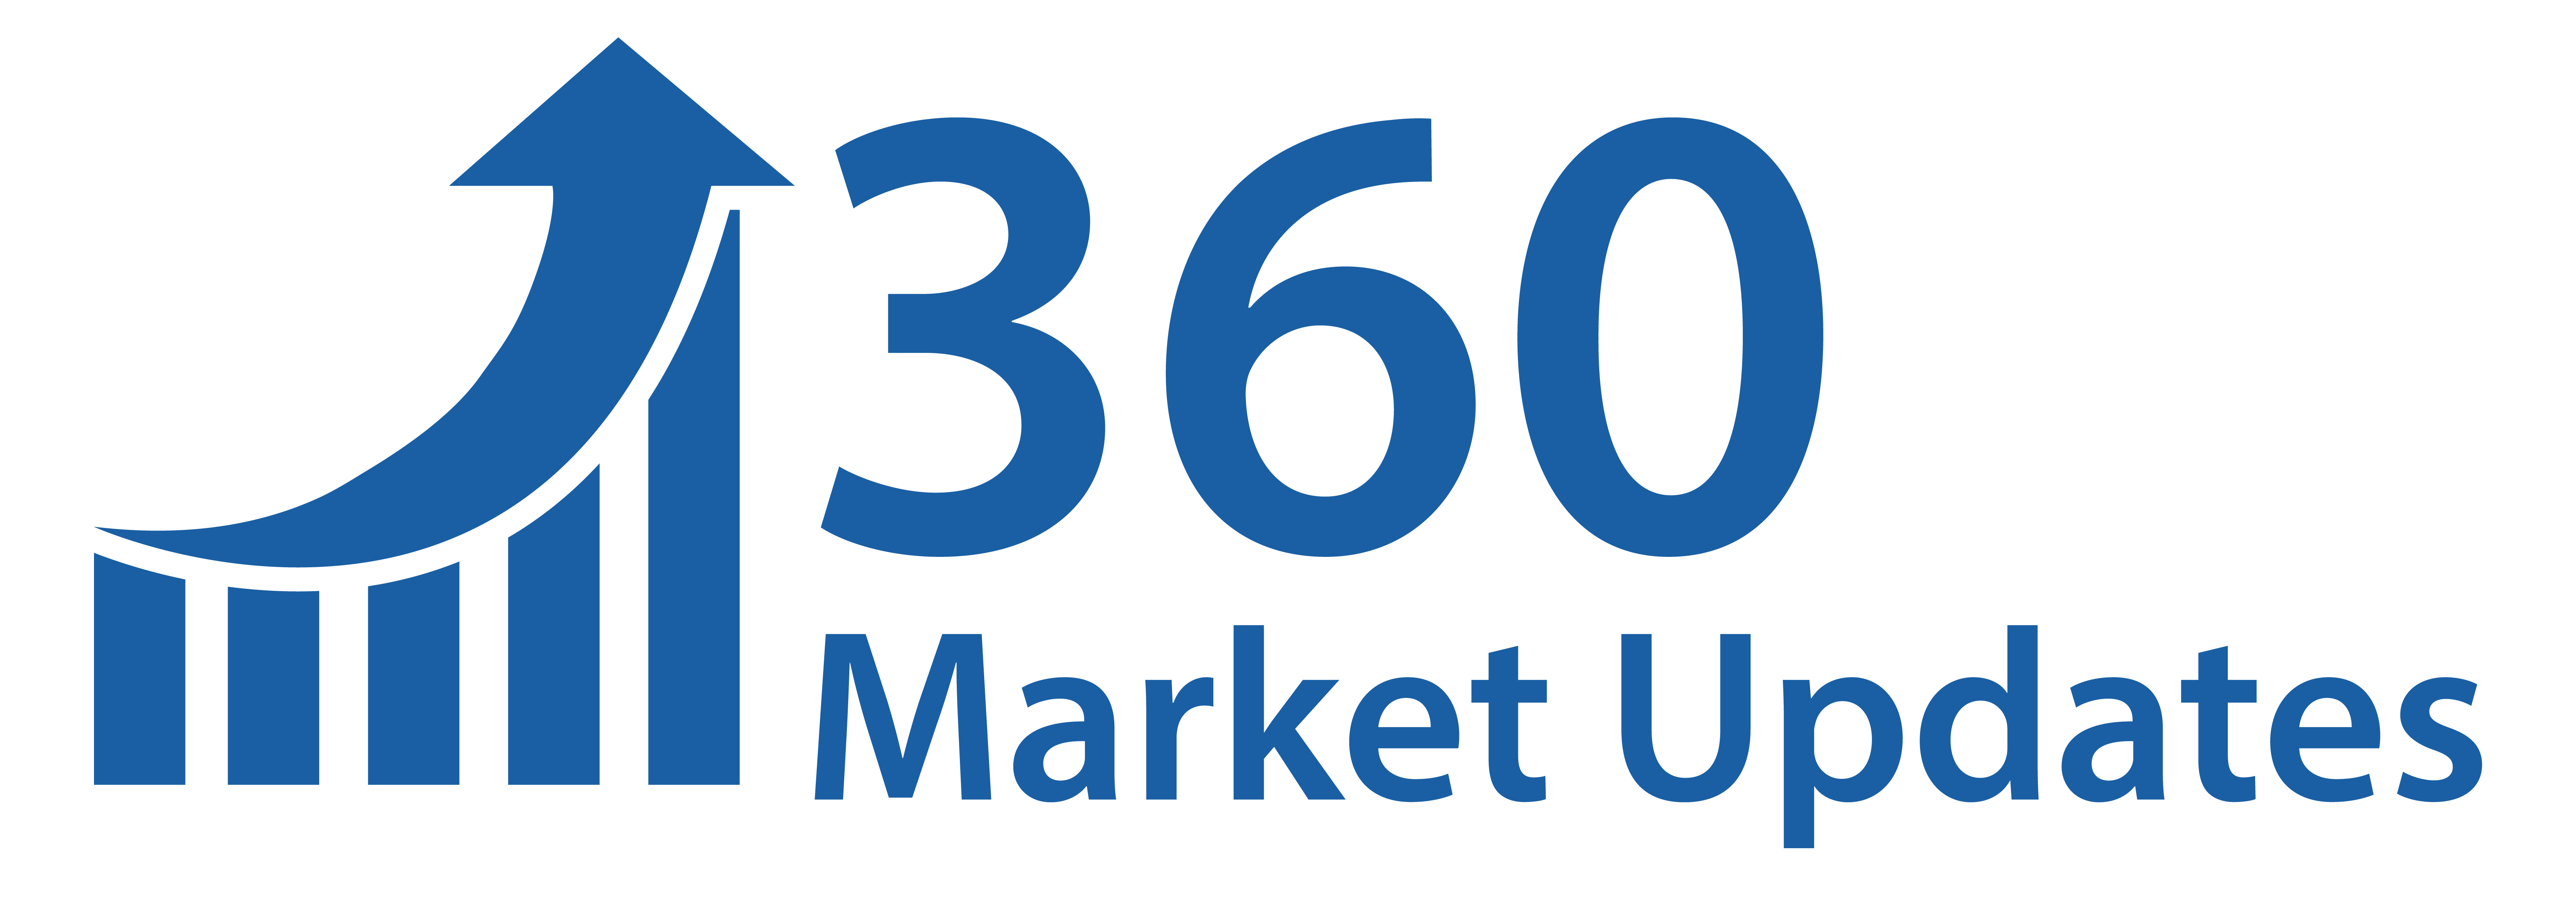 Pet packaging market key players in global region with market share in paper packaging, containers & packaging sector projection to 2023 PET packaging market key players in global region with market share in paper packaging, containers & packaging sector projection to 2023 PET packaging market key players in global region with market share in paper packaging, containers & packaging sector projection to 2023 PET packag